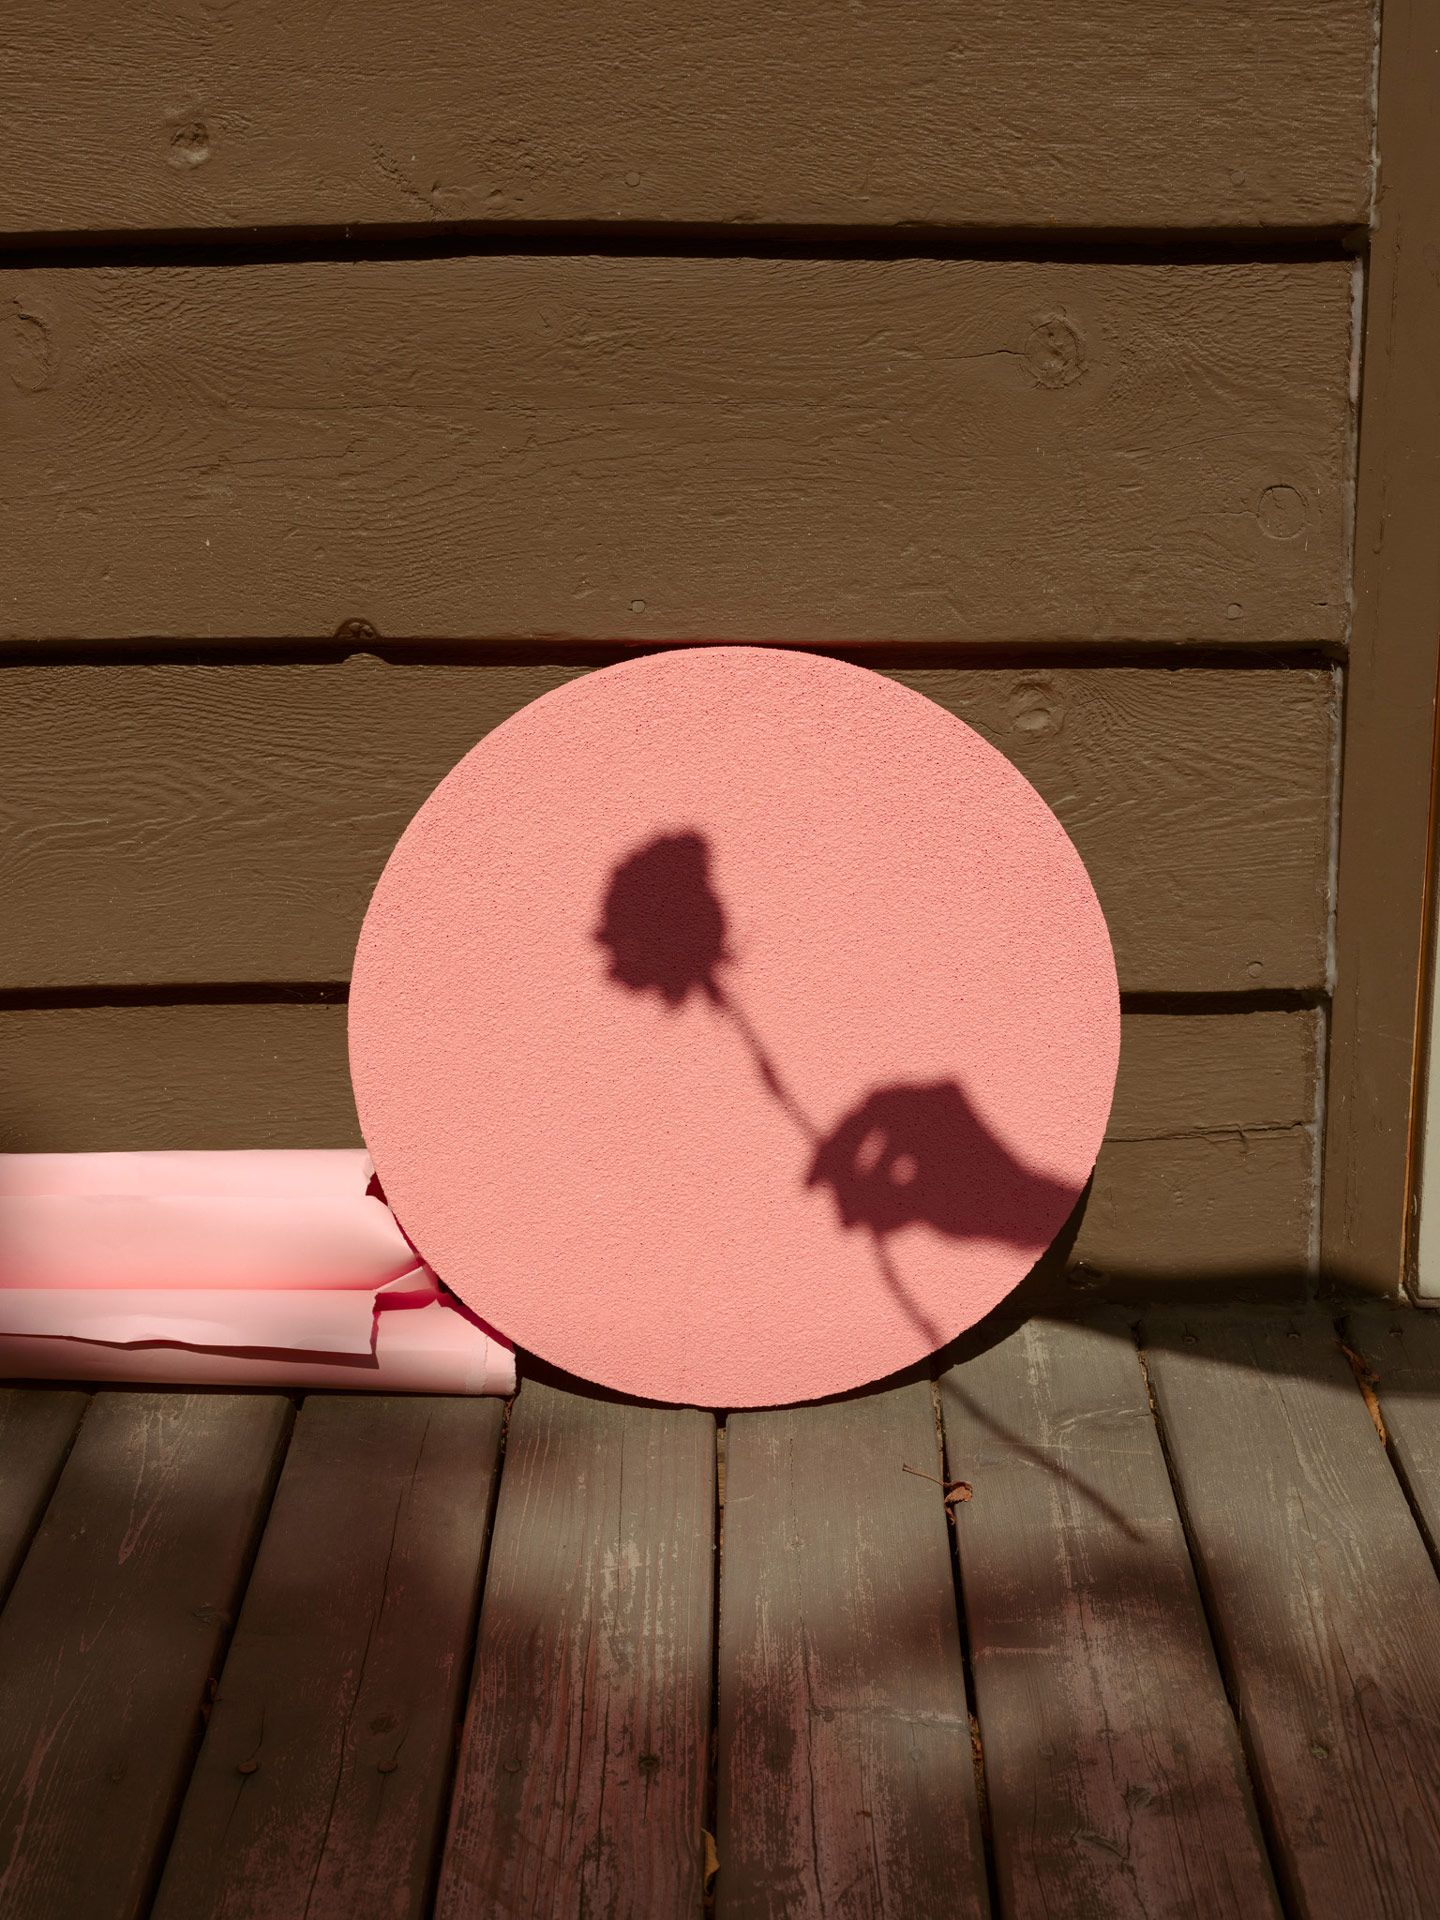 shadow of hand holding rose on pink painted wood circle beside wall by Maxyme G Delisle for Fanny Bloom Liqueur album